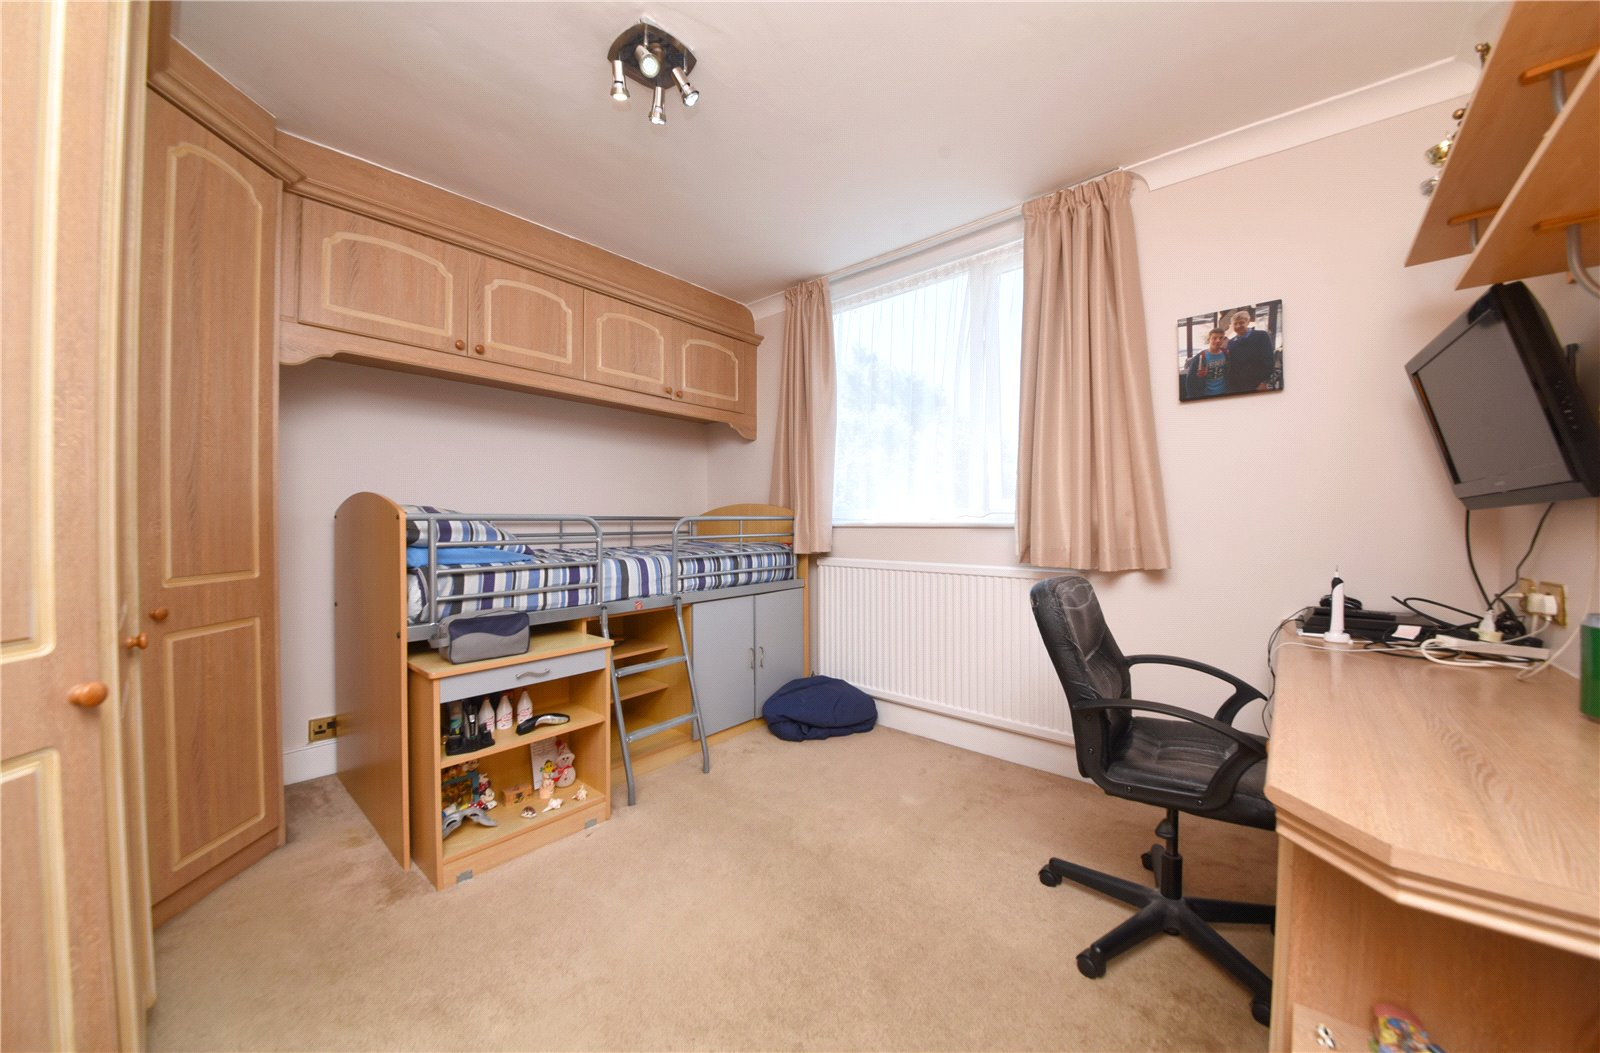 3 bed house for sale in Southgate, N14 4NY 6